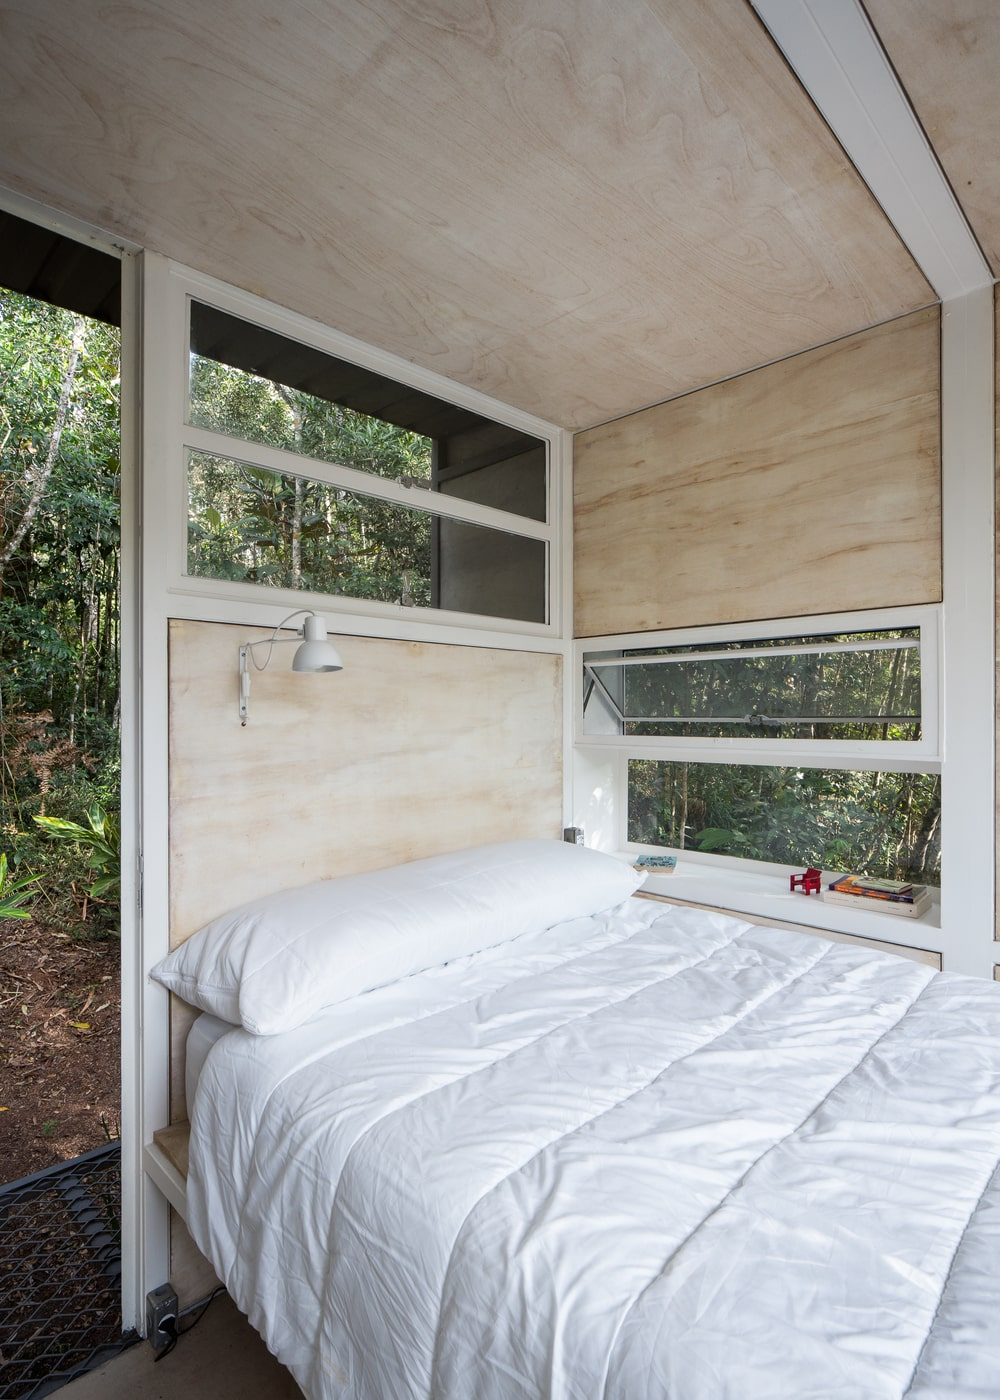 This is the bedroom that has a white bed on a built-in wooden structure that connects to the walls adorned by windows that show the landscape outside.